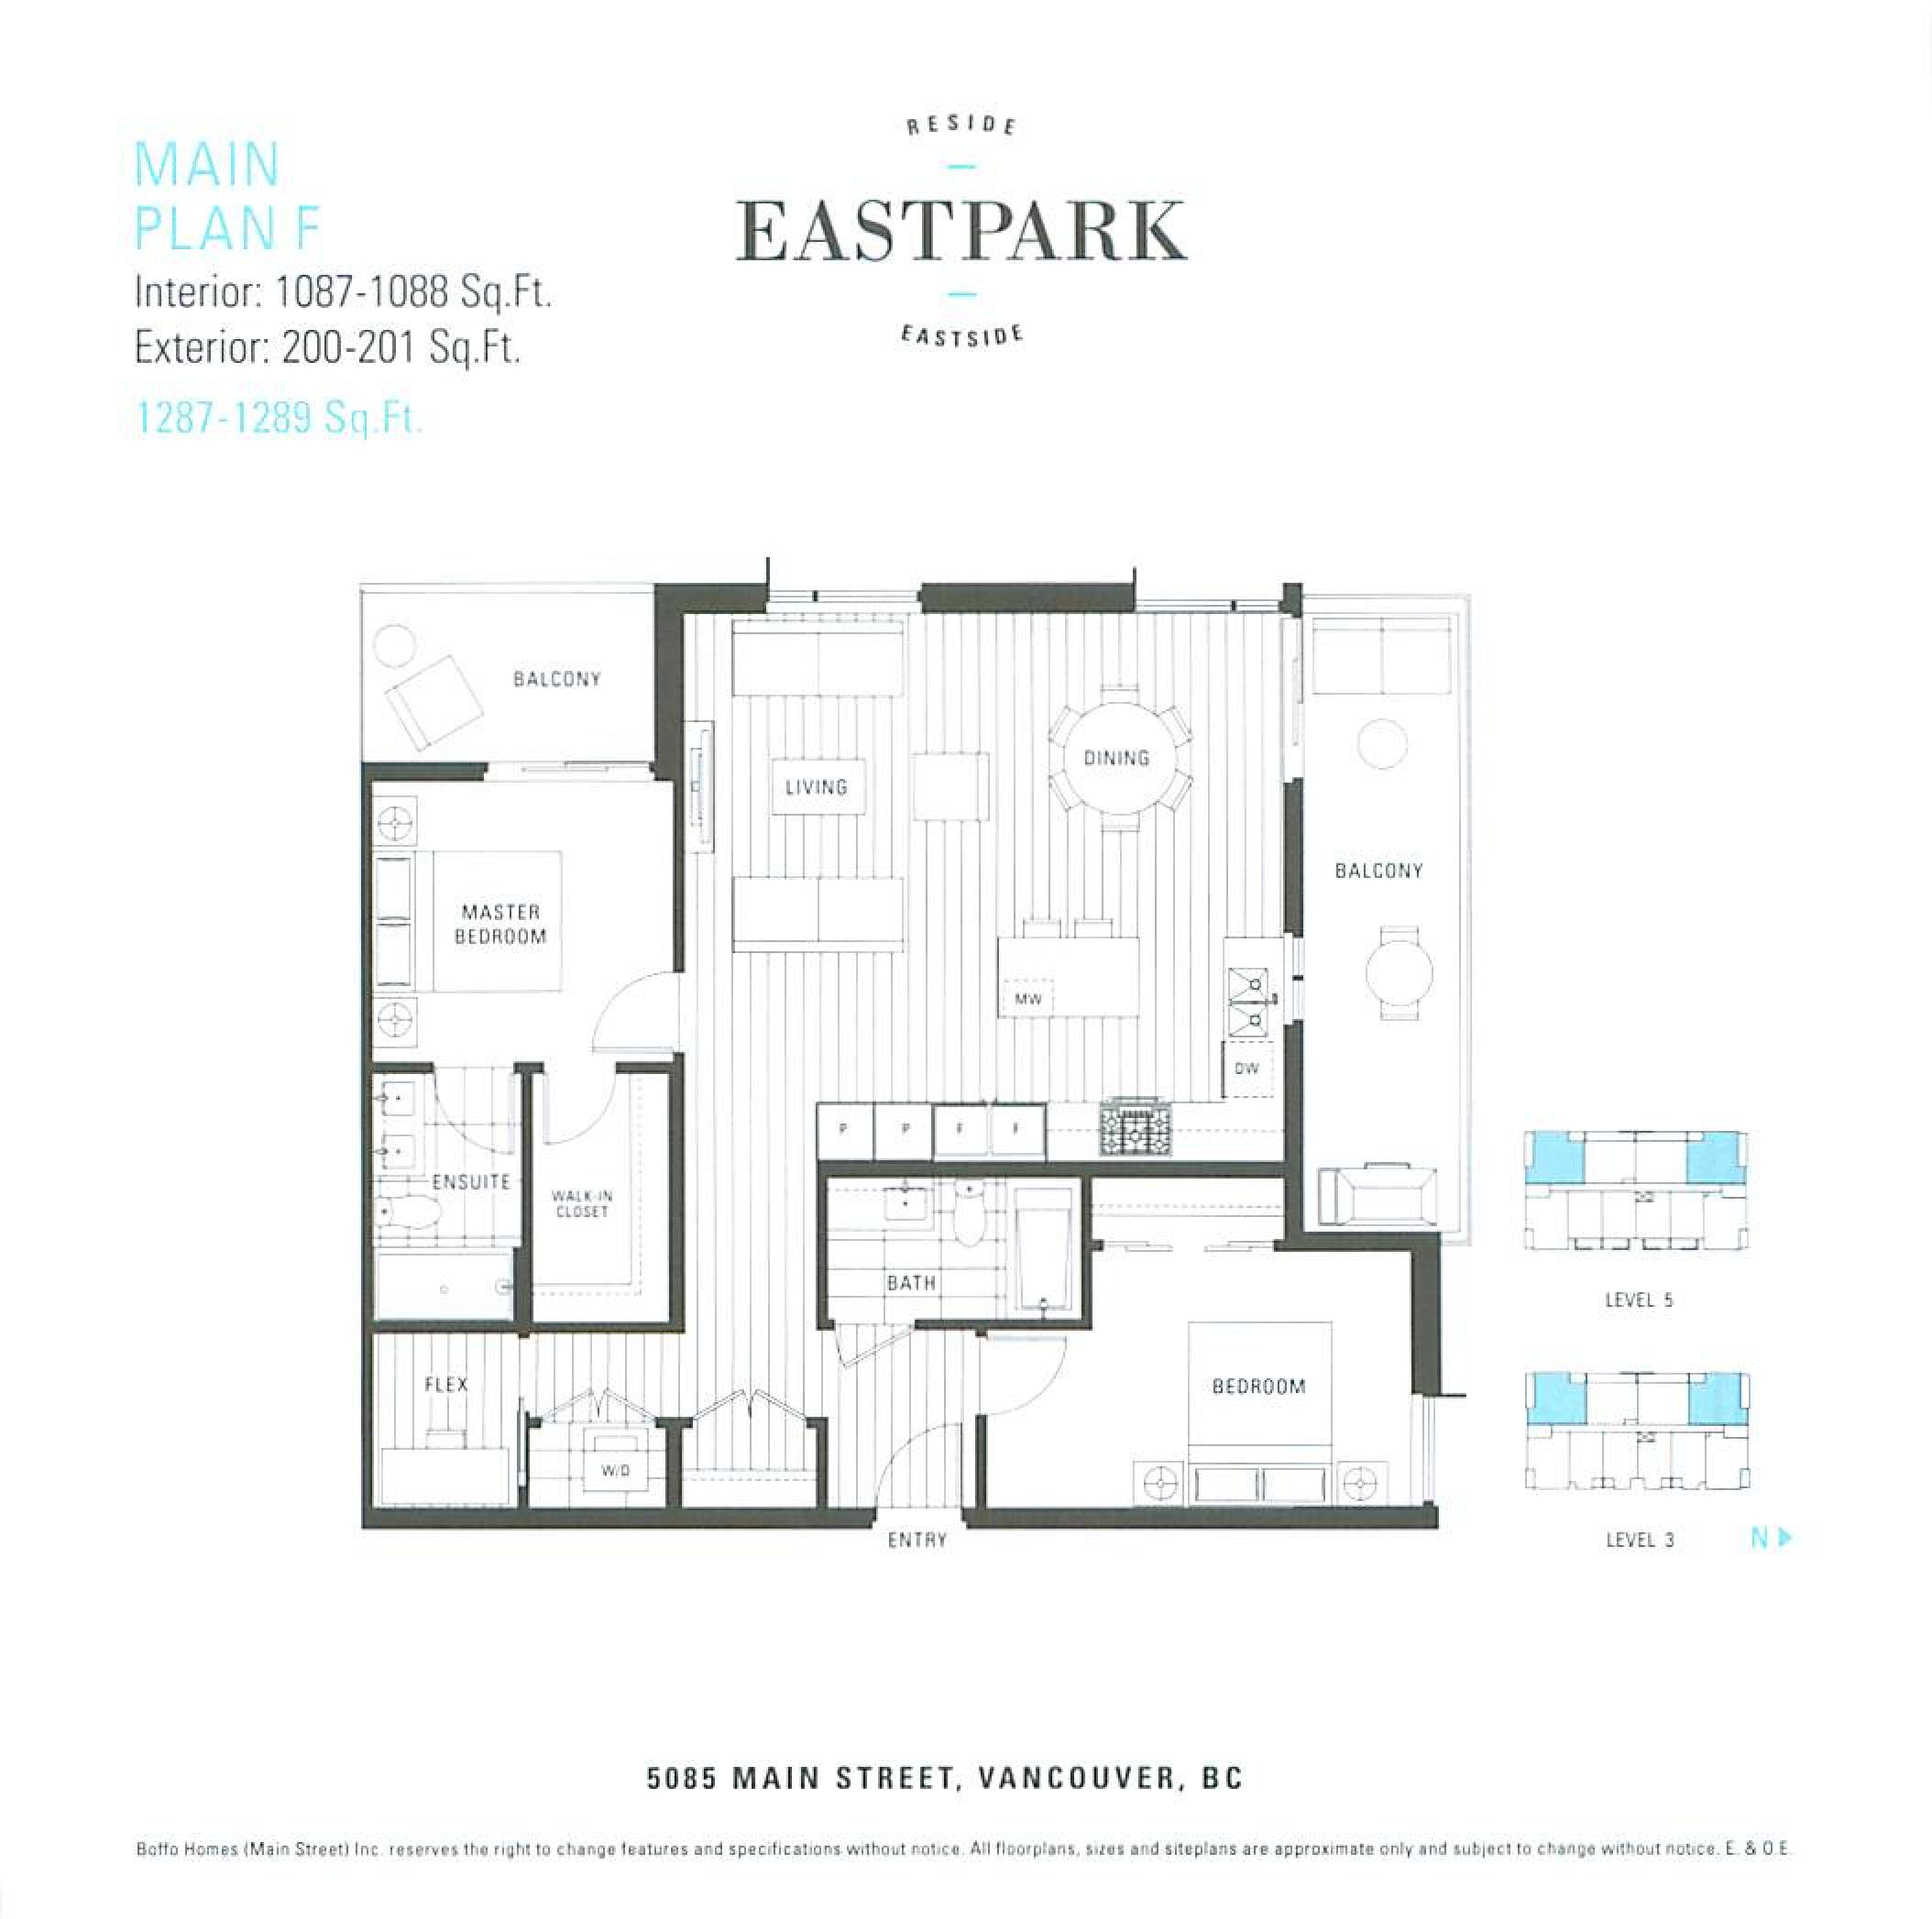 EastPark Main Smaller Floor Plans Mike Stewart-page-007